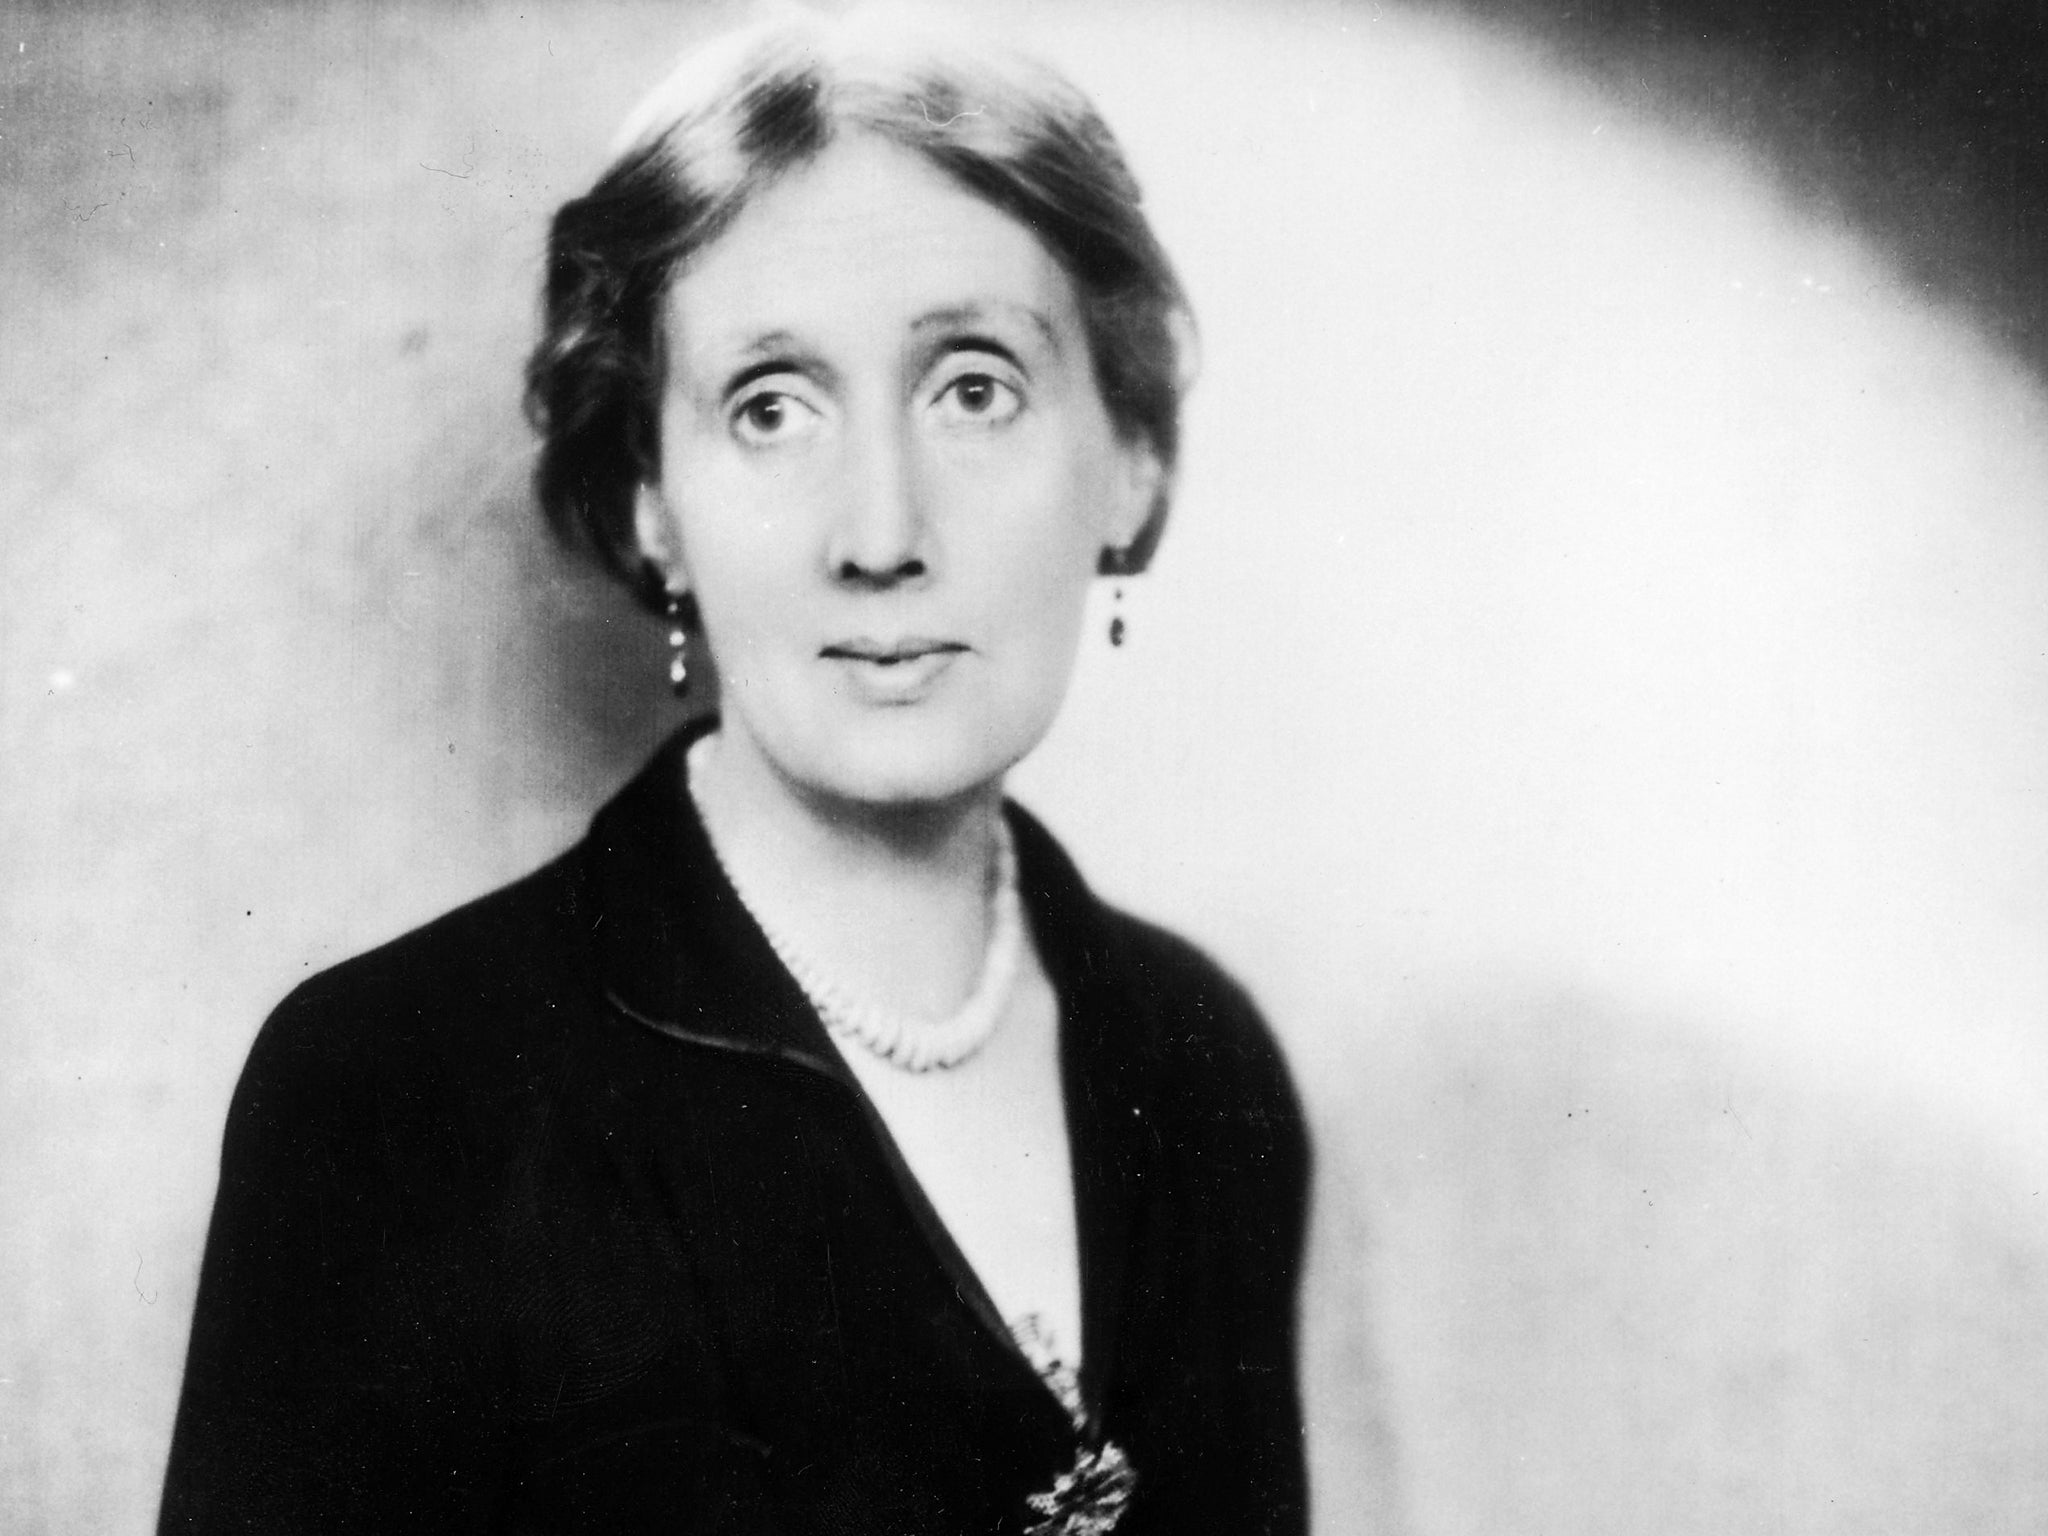 It's important to listen to imaginary voices – just ask Virginia Woolf